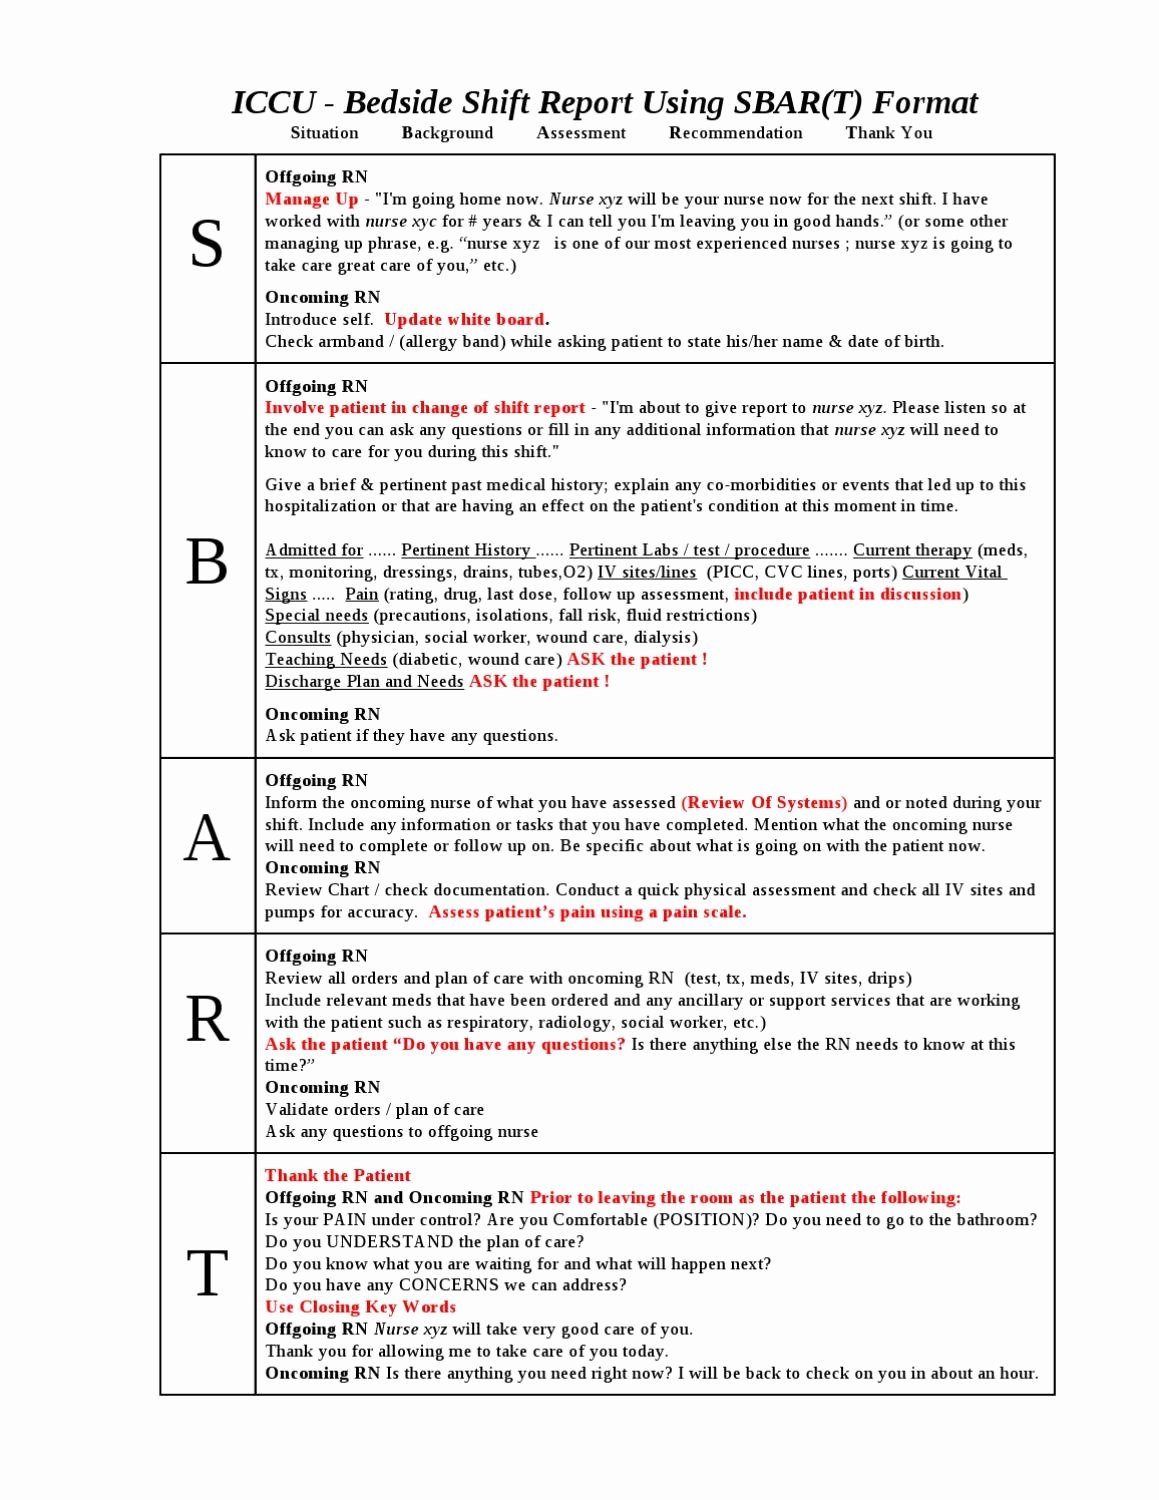 End Of Shift Report Template Lovely Ccu Bedside Shift Report Template by Ian Saludares issuu